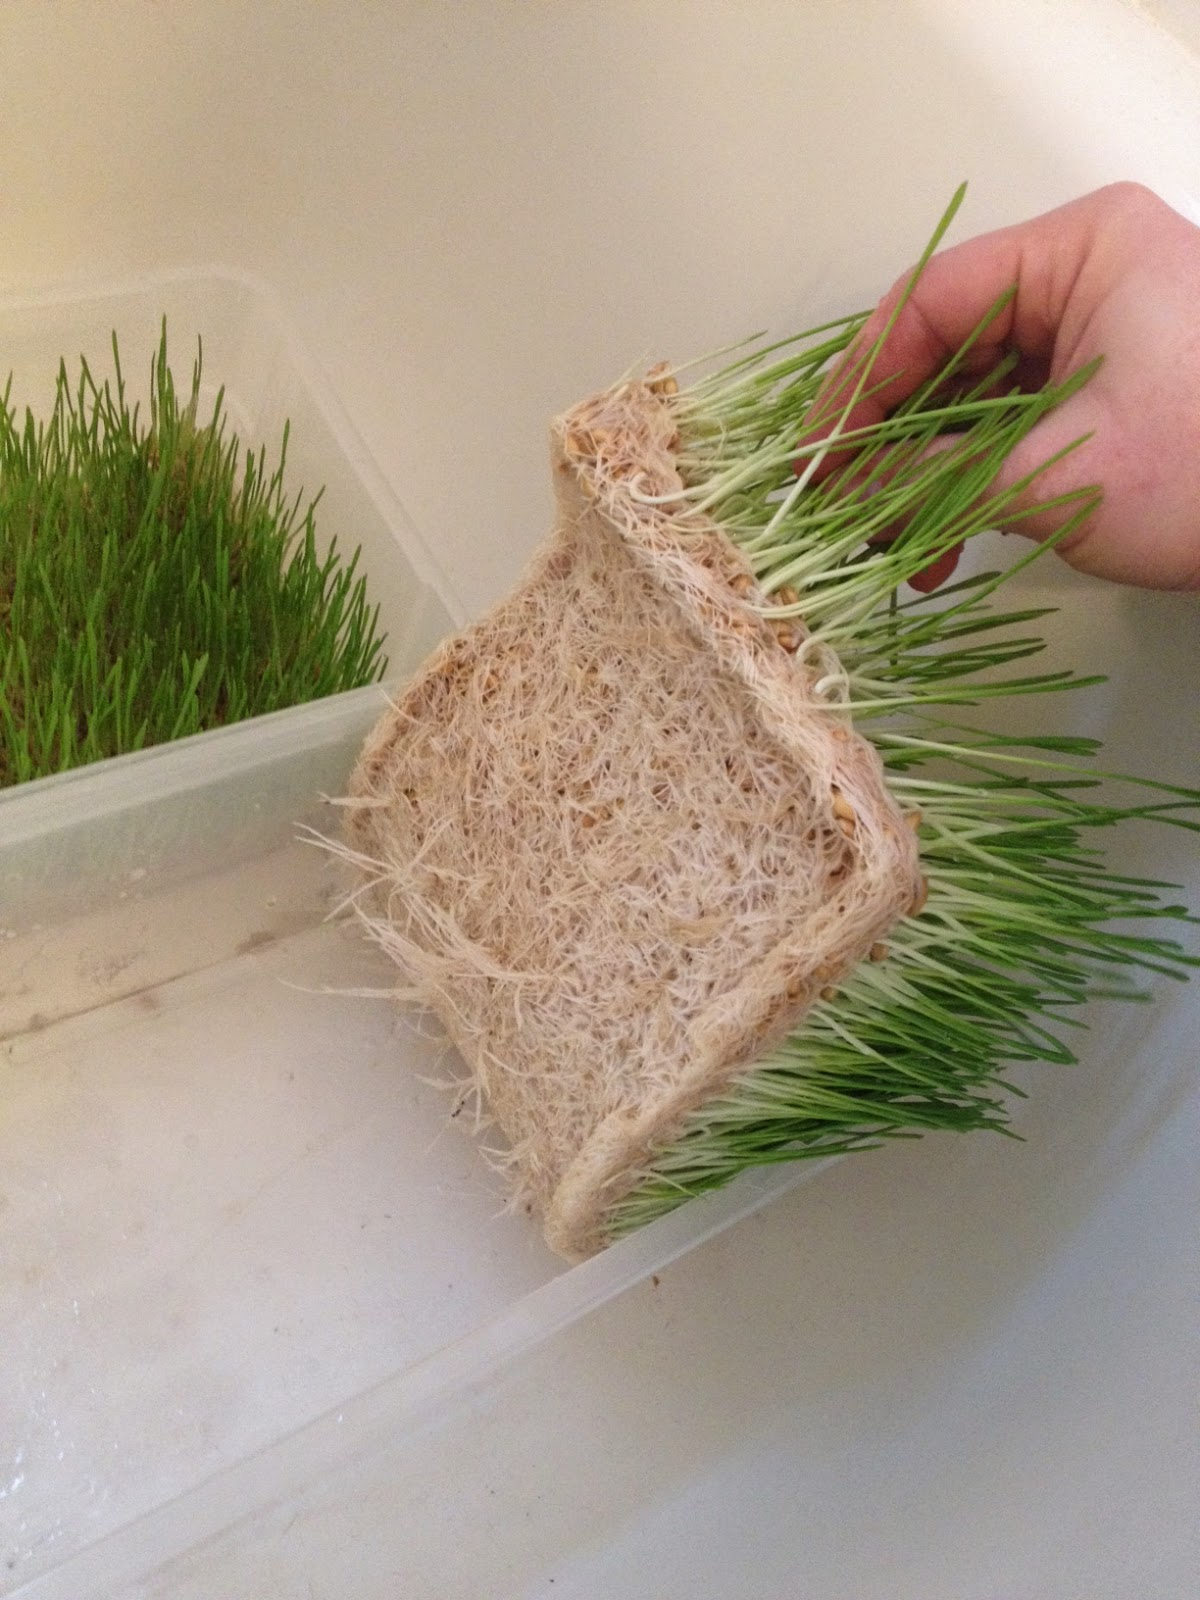 how to grow fodder in the winter